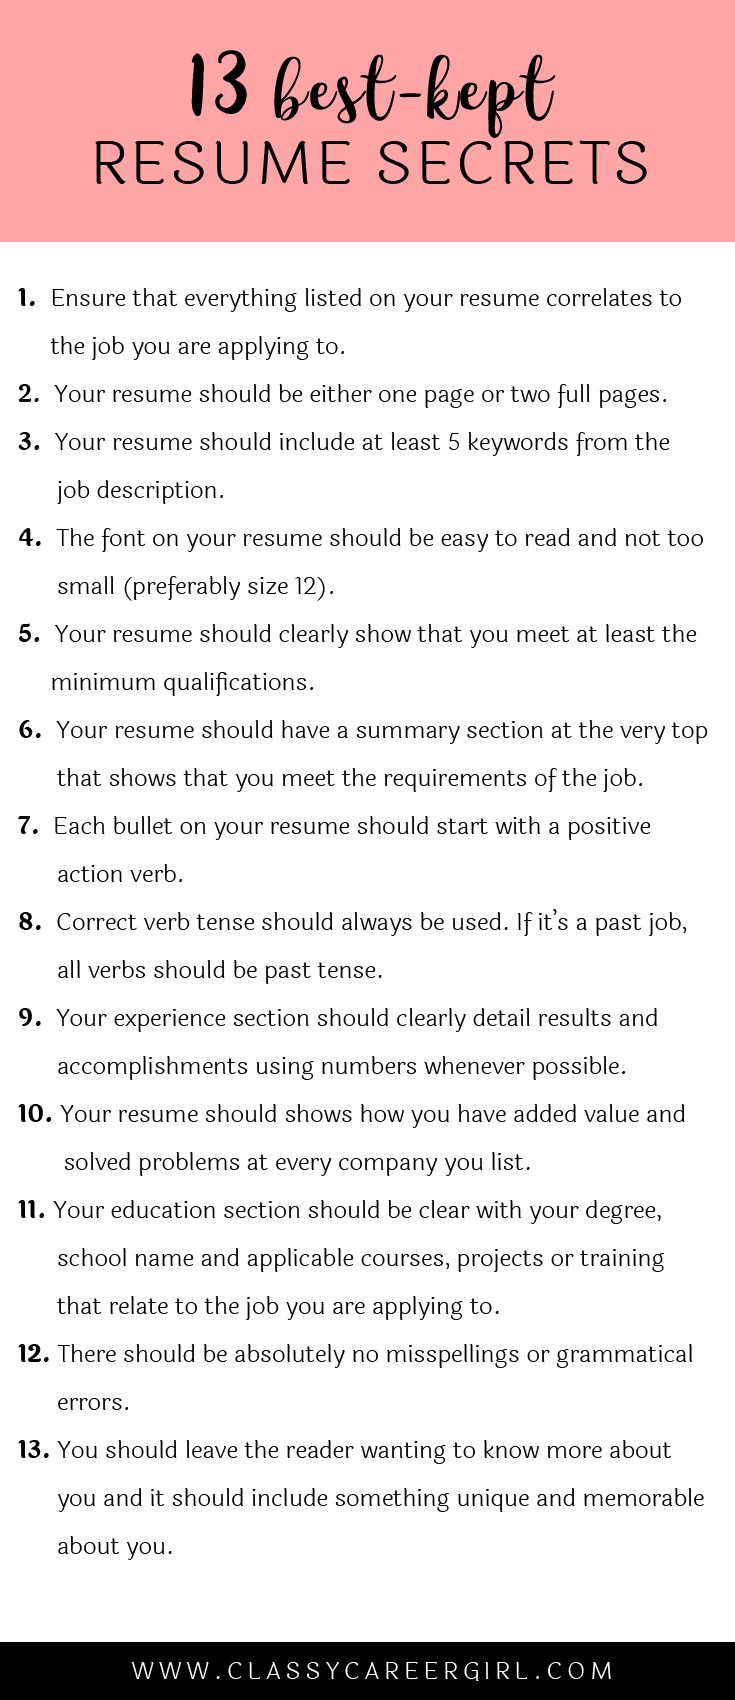 Opposenewapstandardsus  Gorgeous  Ideas About Resume On Pinterest  Cv Format Resume Cv And  With Marvelous Some Hiring Managers Will Toss Your Resume Out If You Dont Know These  With Captivating Best Resume Samples Also Resume For No Work Experience In Addition Sample Resume Template And Should I Put My Gpa On My Resume As Well As How To Create A Cover Letter For A Resume Additionally New Teacher Resume From Pinterestcom With Opposenewapstandardsus  Marvelous  Ideas About Resume On Pinterest  Cv Format Resume Cv And  With Captivating Some Hiring Managers Will Toss Your Resume Out If You Dont Know These  And Gorgeous Best Resume Samples Also Resume For No Work Experience In Addition Sample Resume Template From Pinterestcom